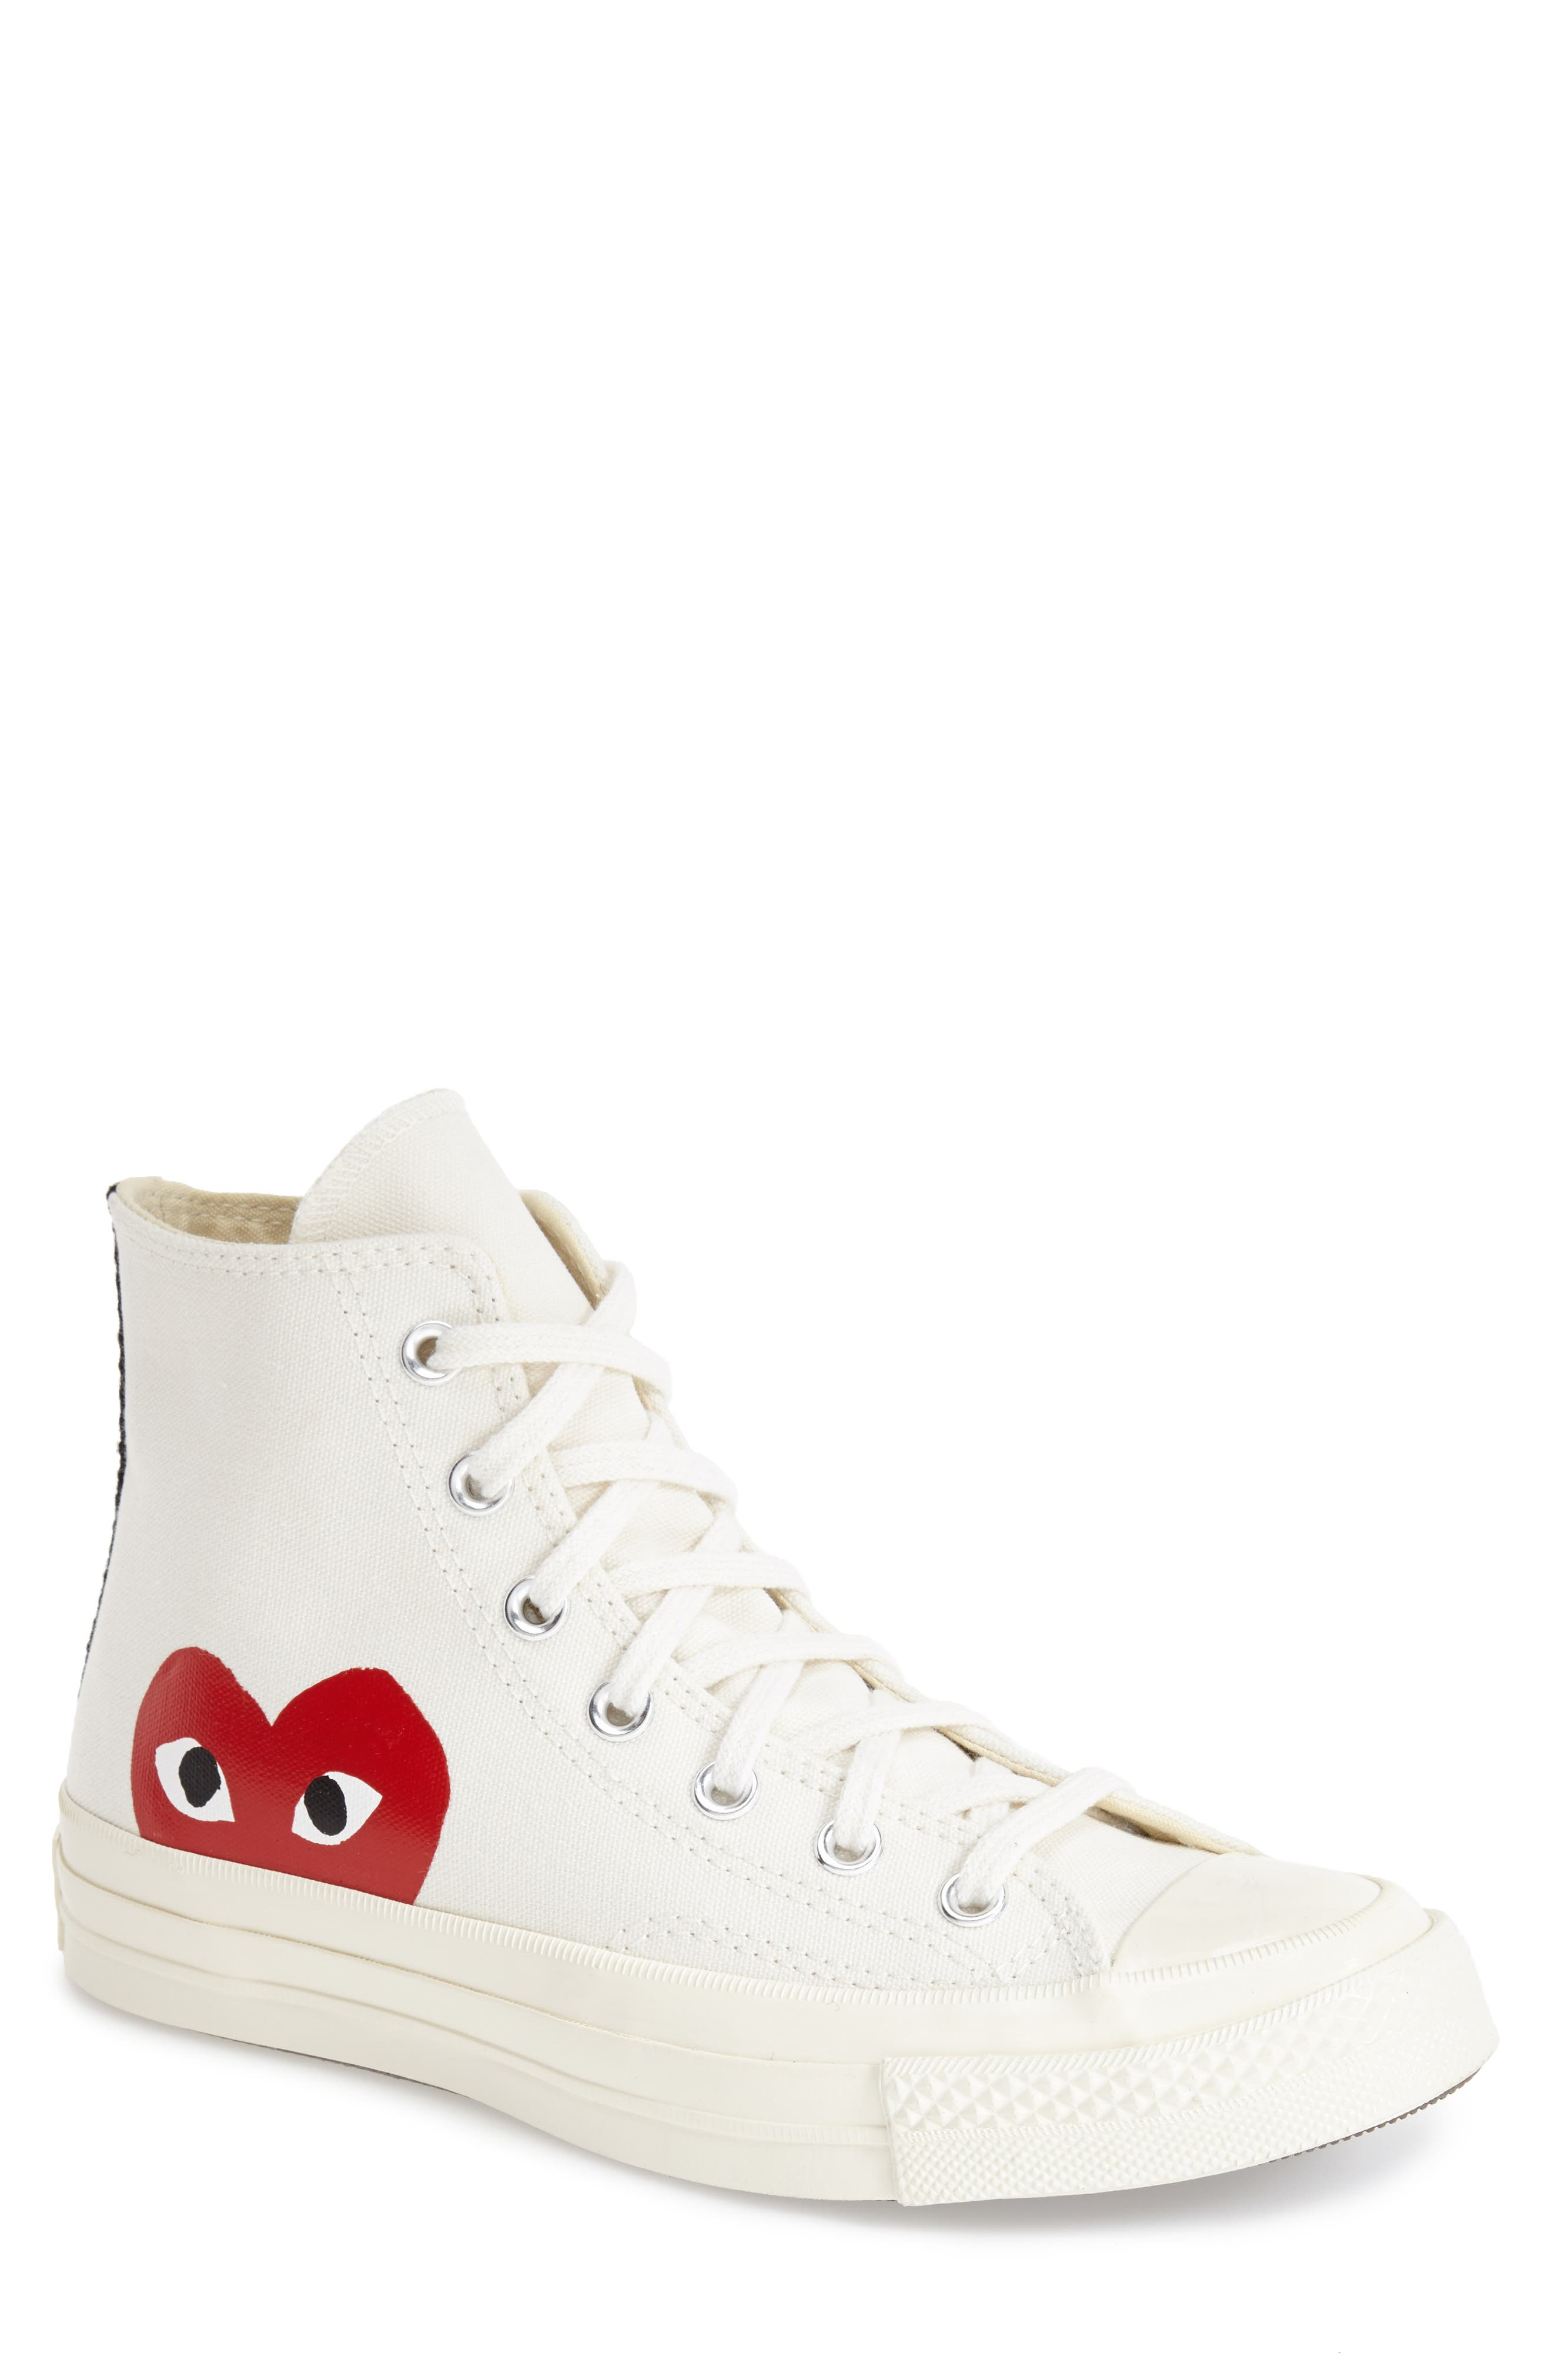 Comme des Garçons PLAY x Converse Chuck Taylor® Hidden Heart High Top Sneaker (Women)